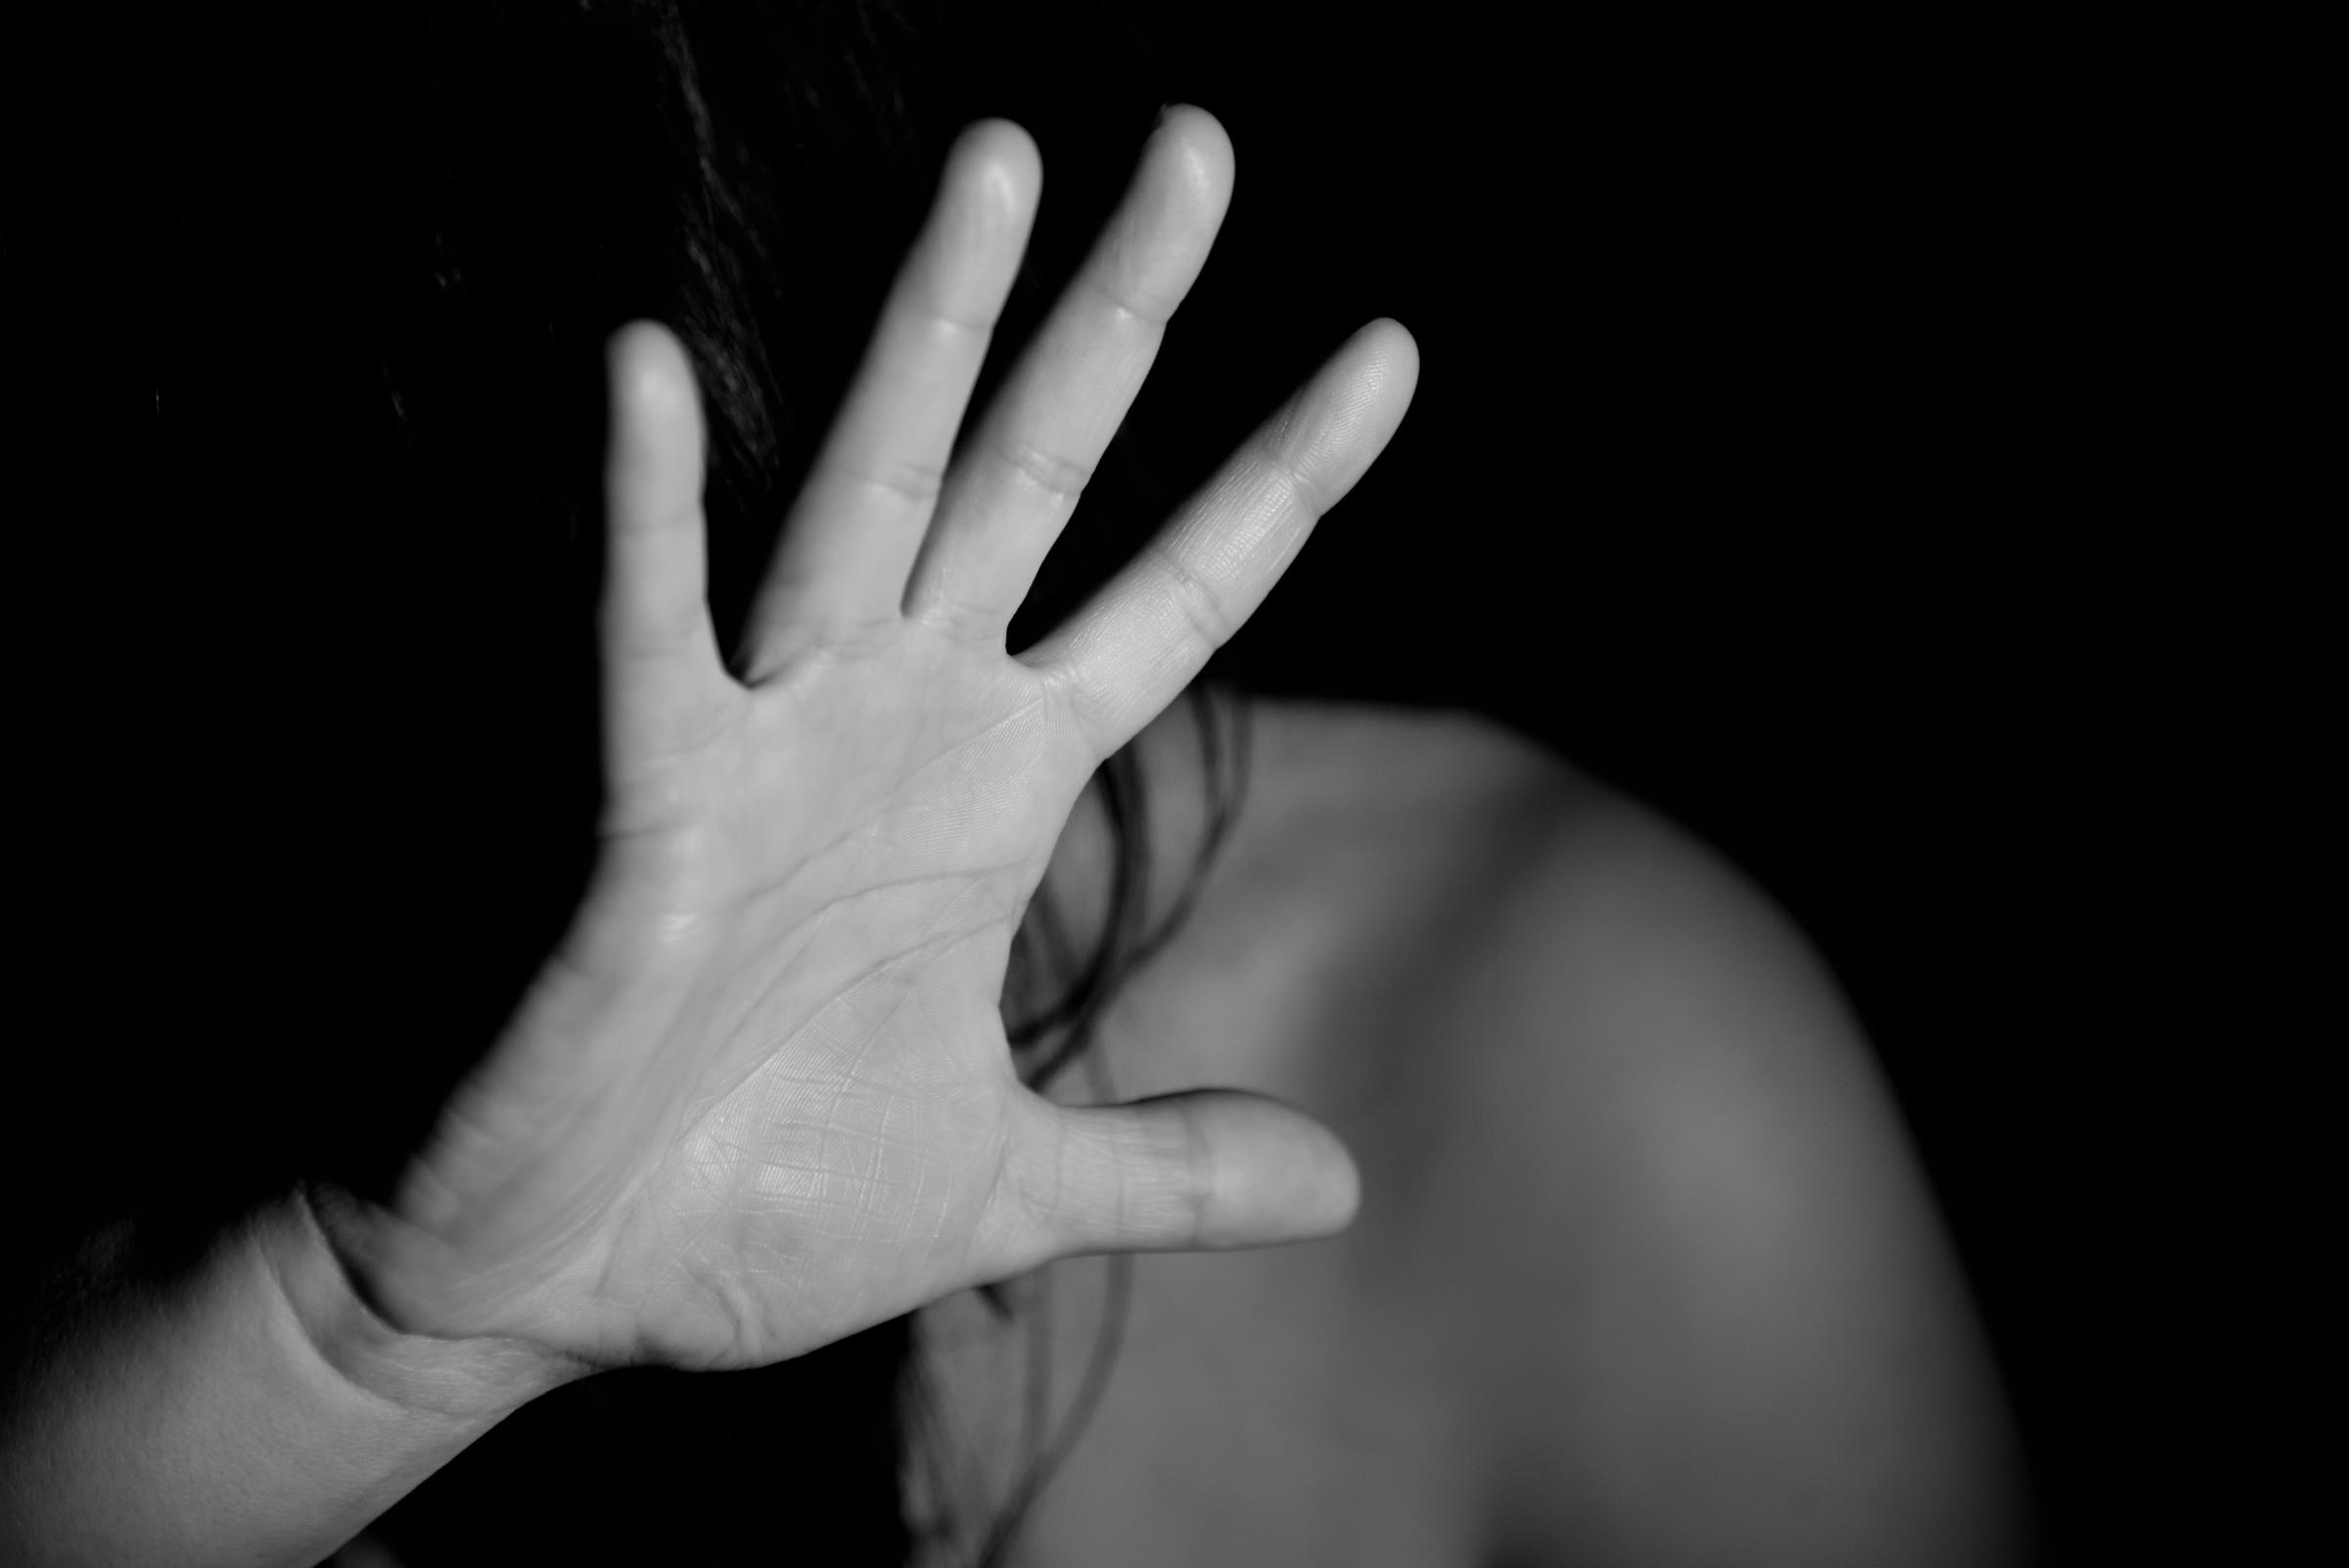 Victim Compensation Scheme: The First Steps To Ensure Justice